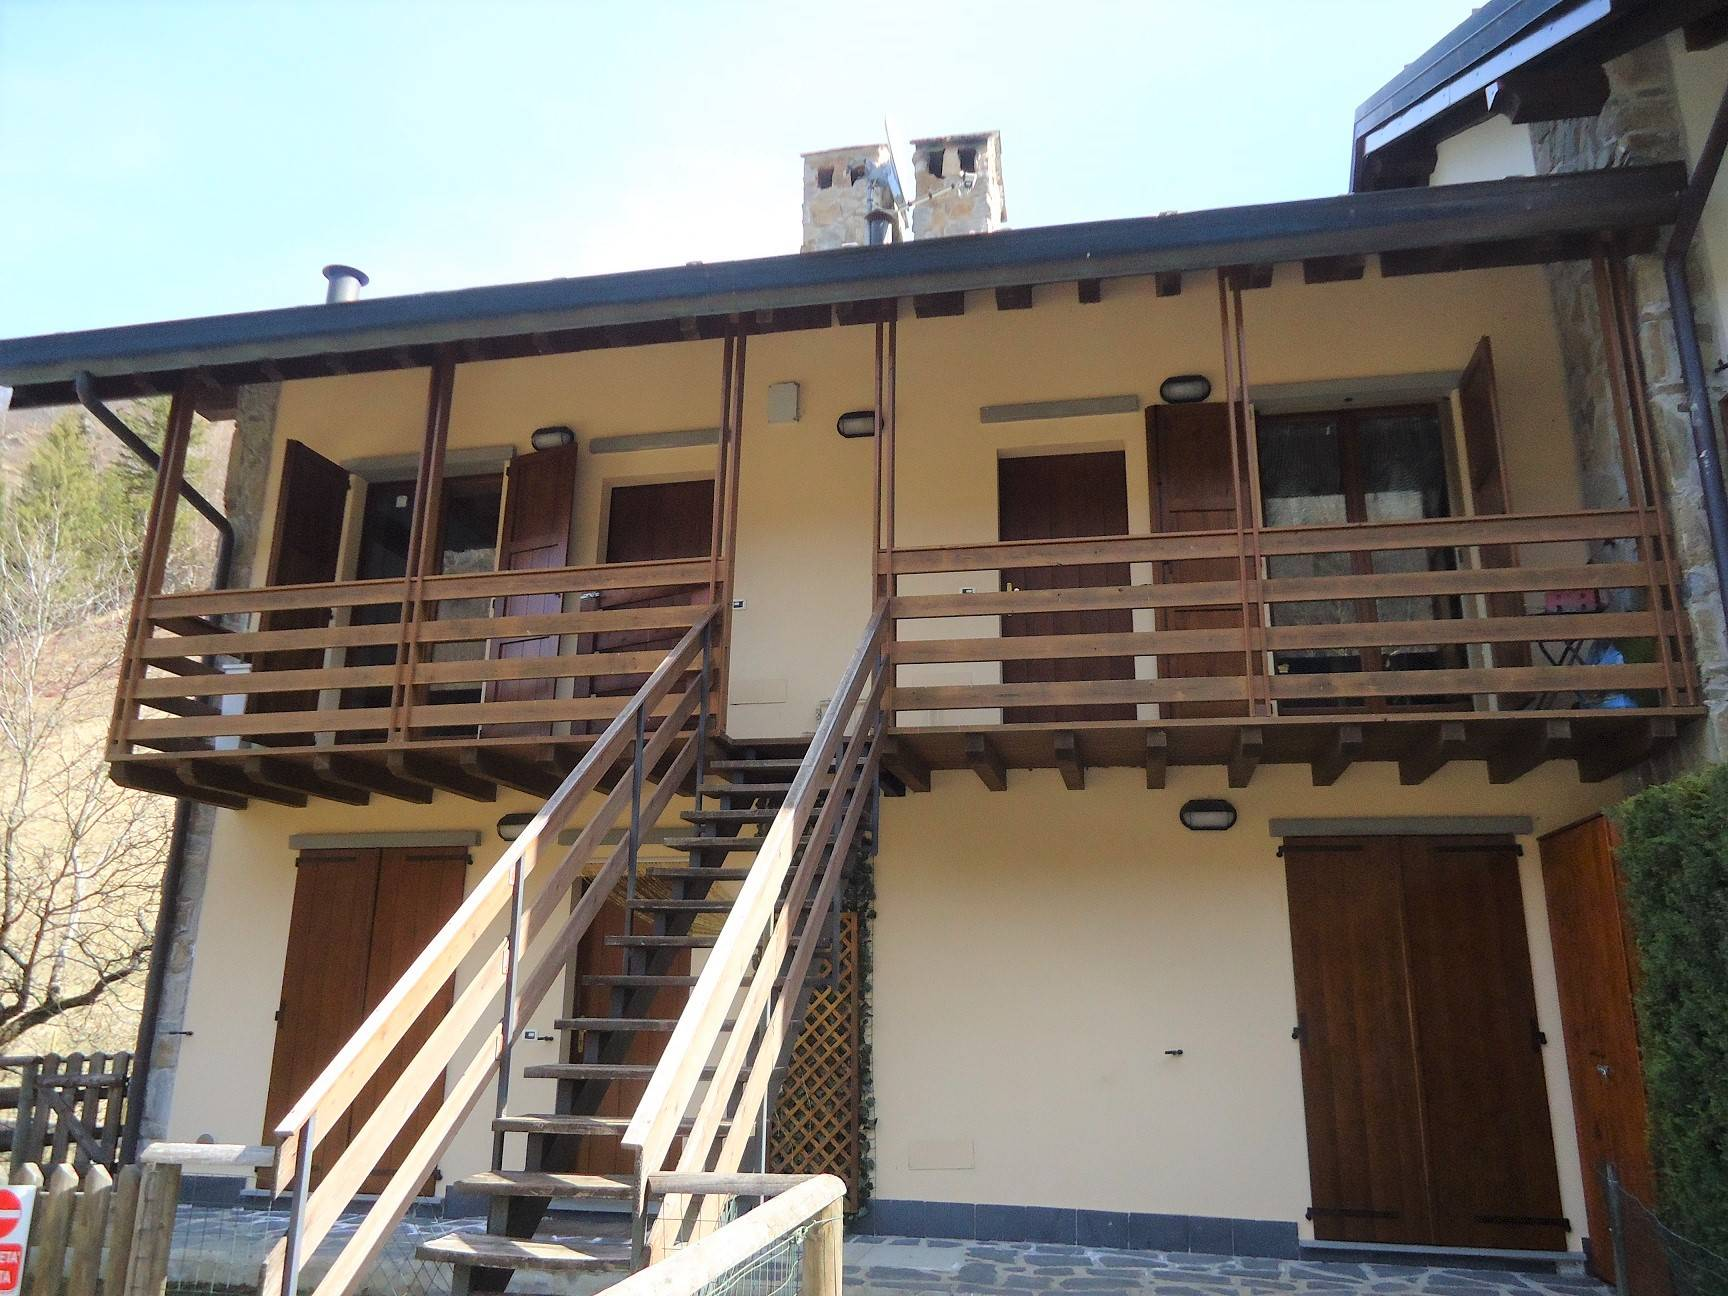 CASSIGLIO, Apartment for sale of 60 Sq. mt., Almost new, Heating Individual heating system, Energetic class: D, Epi: 76,97 kwh/m2 year, placed at 1°,